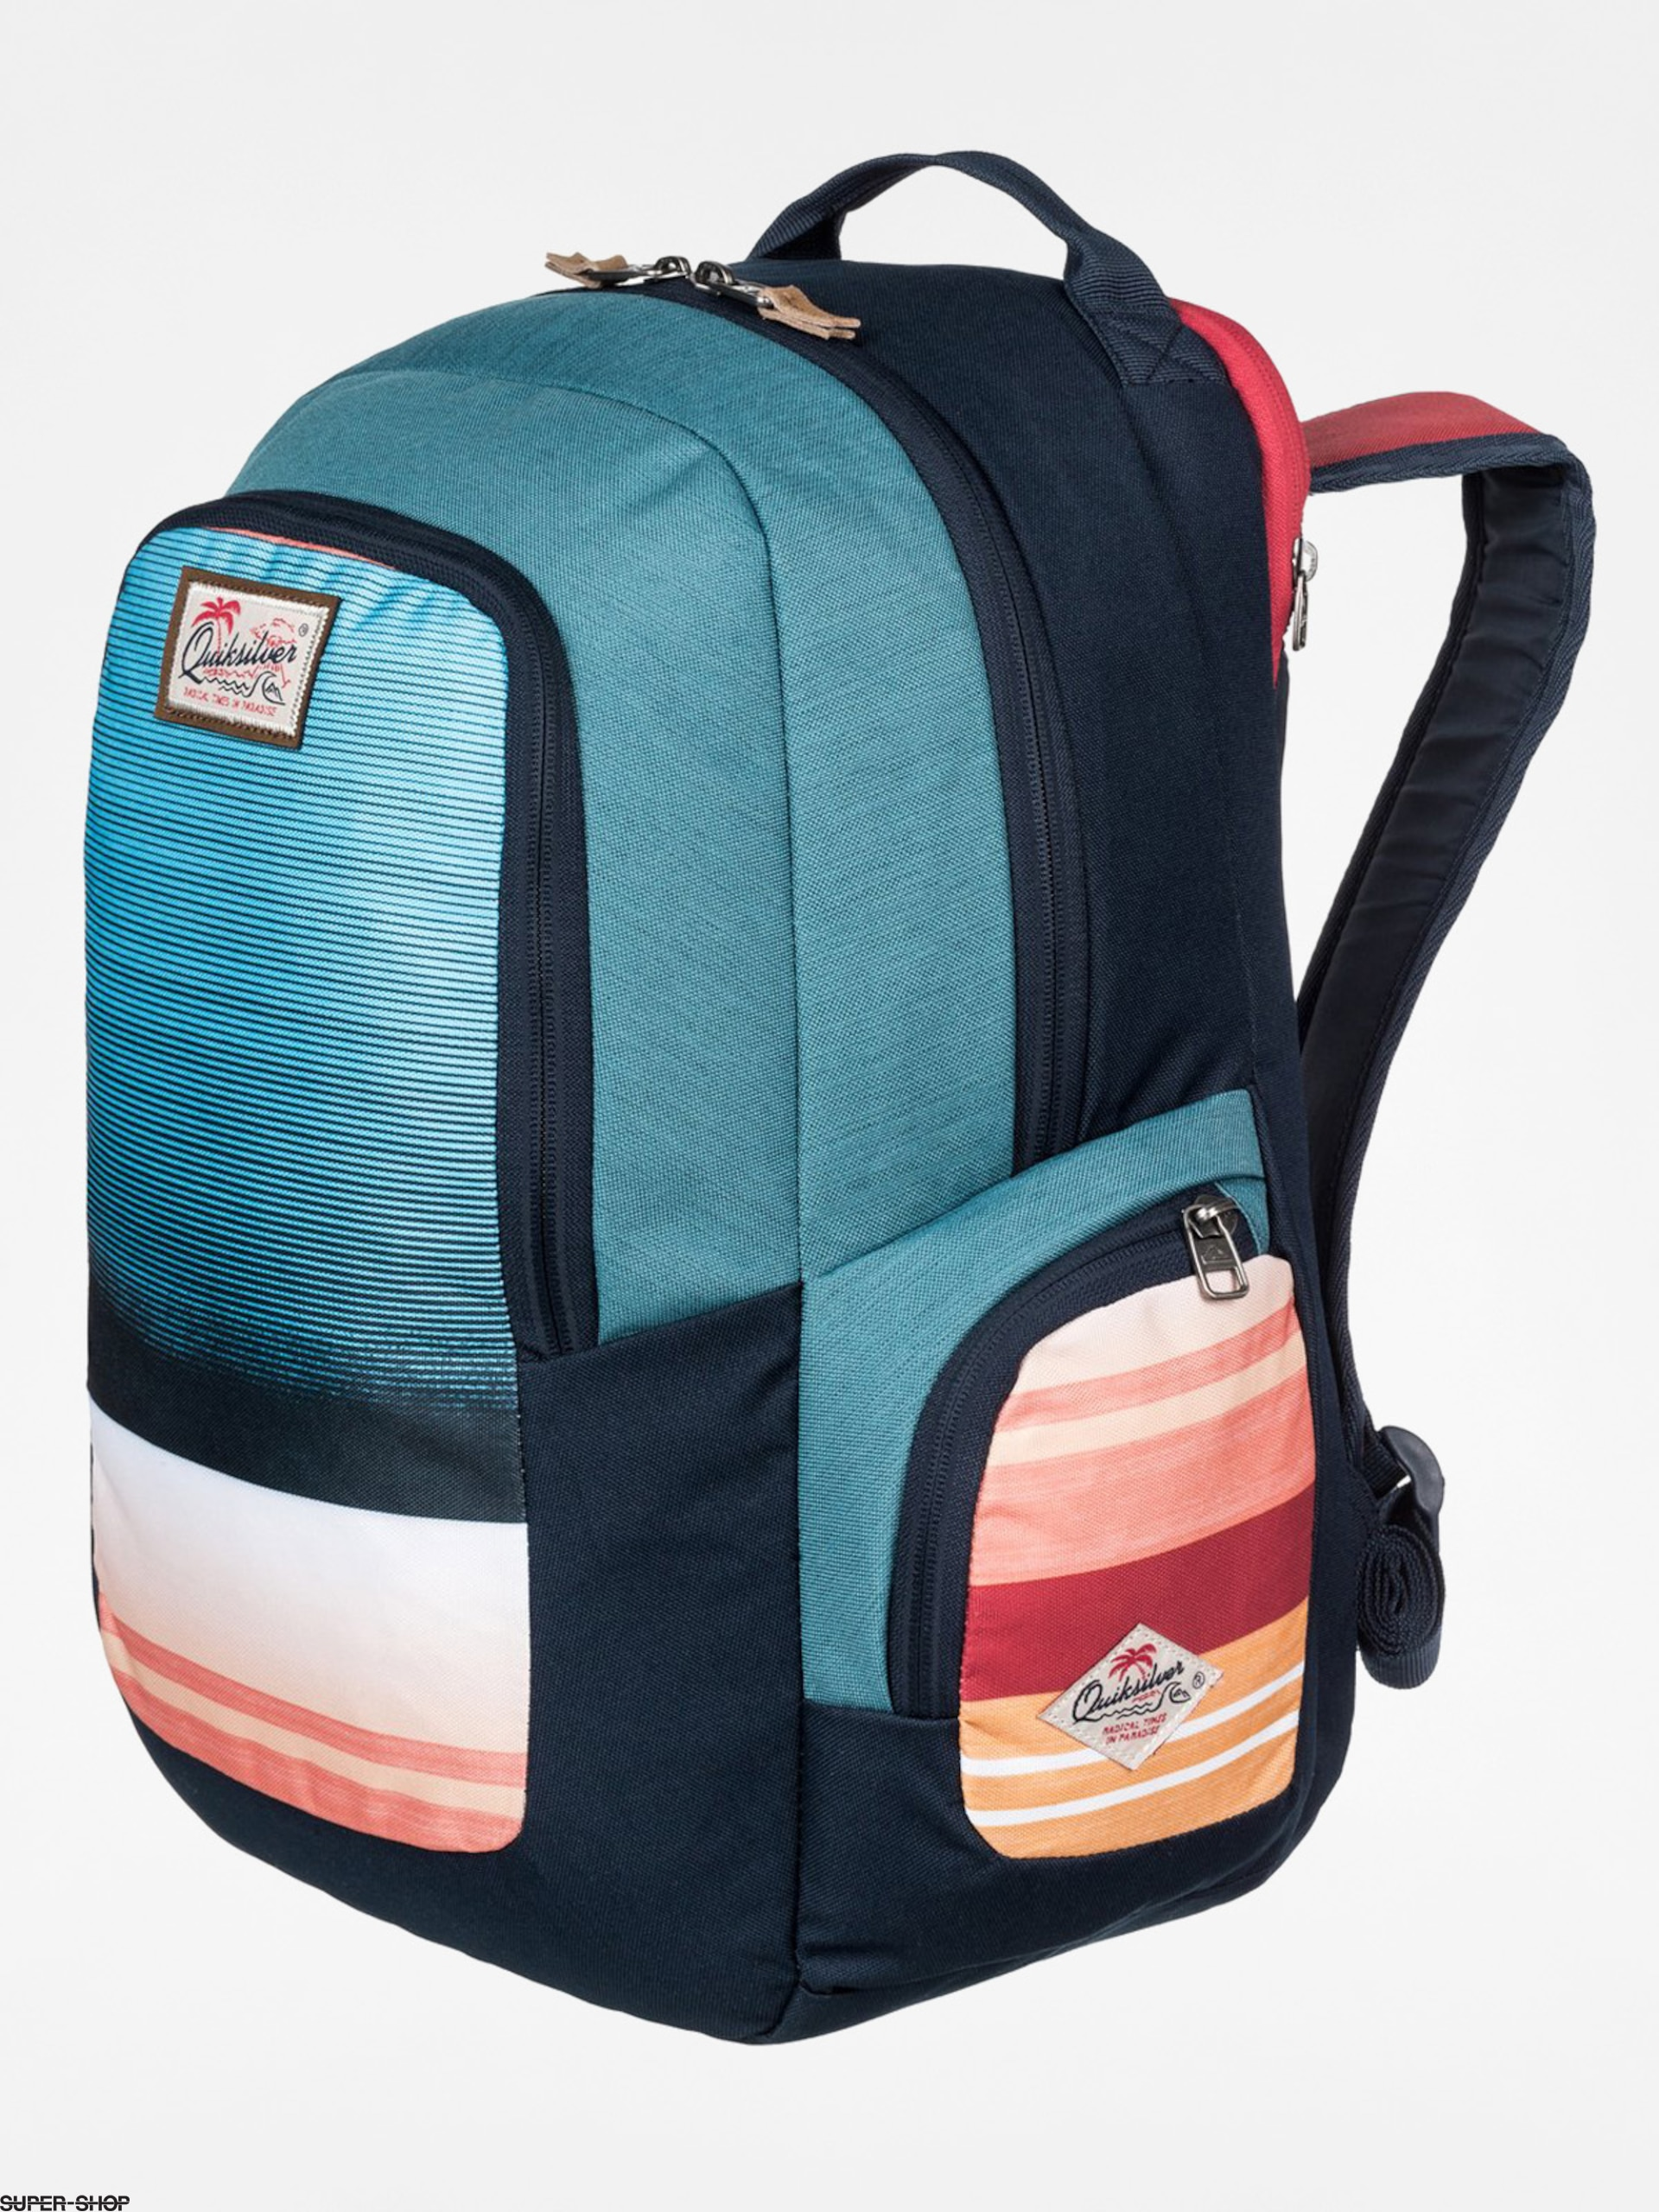 Quiksilver Backpack Schoolie (navy/blue/orange)